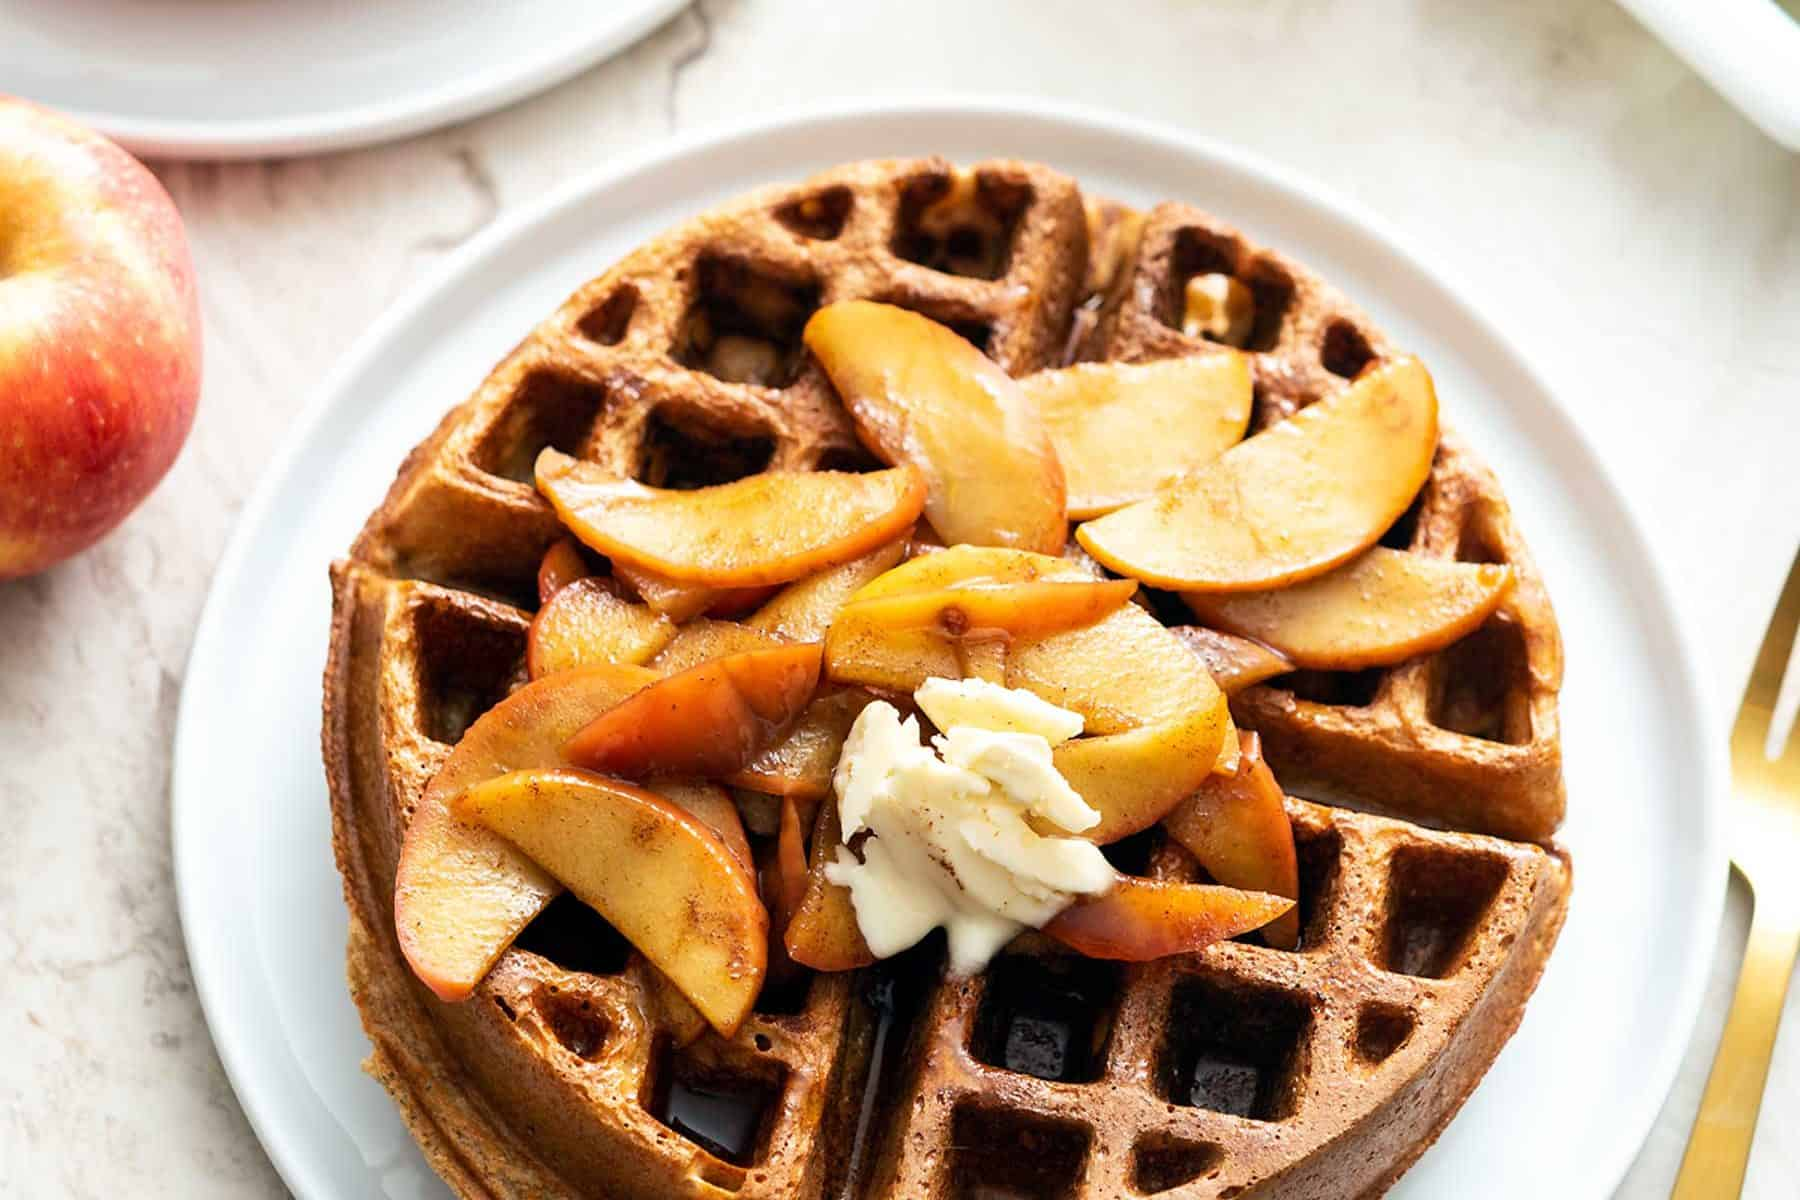 These spiced Chai Waffles with Cinnamon Apple Topping are the perfect fall brunch meal! Plus, they're vegan and soy-free.